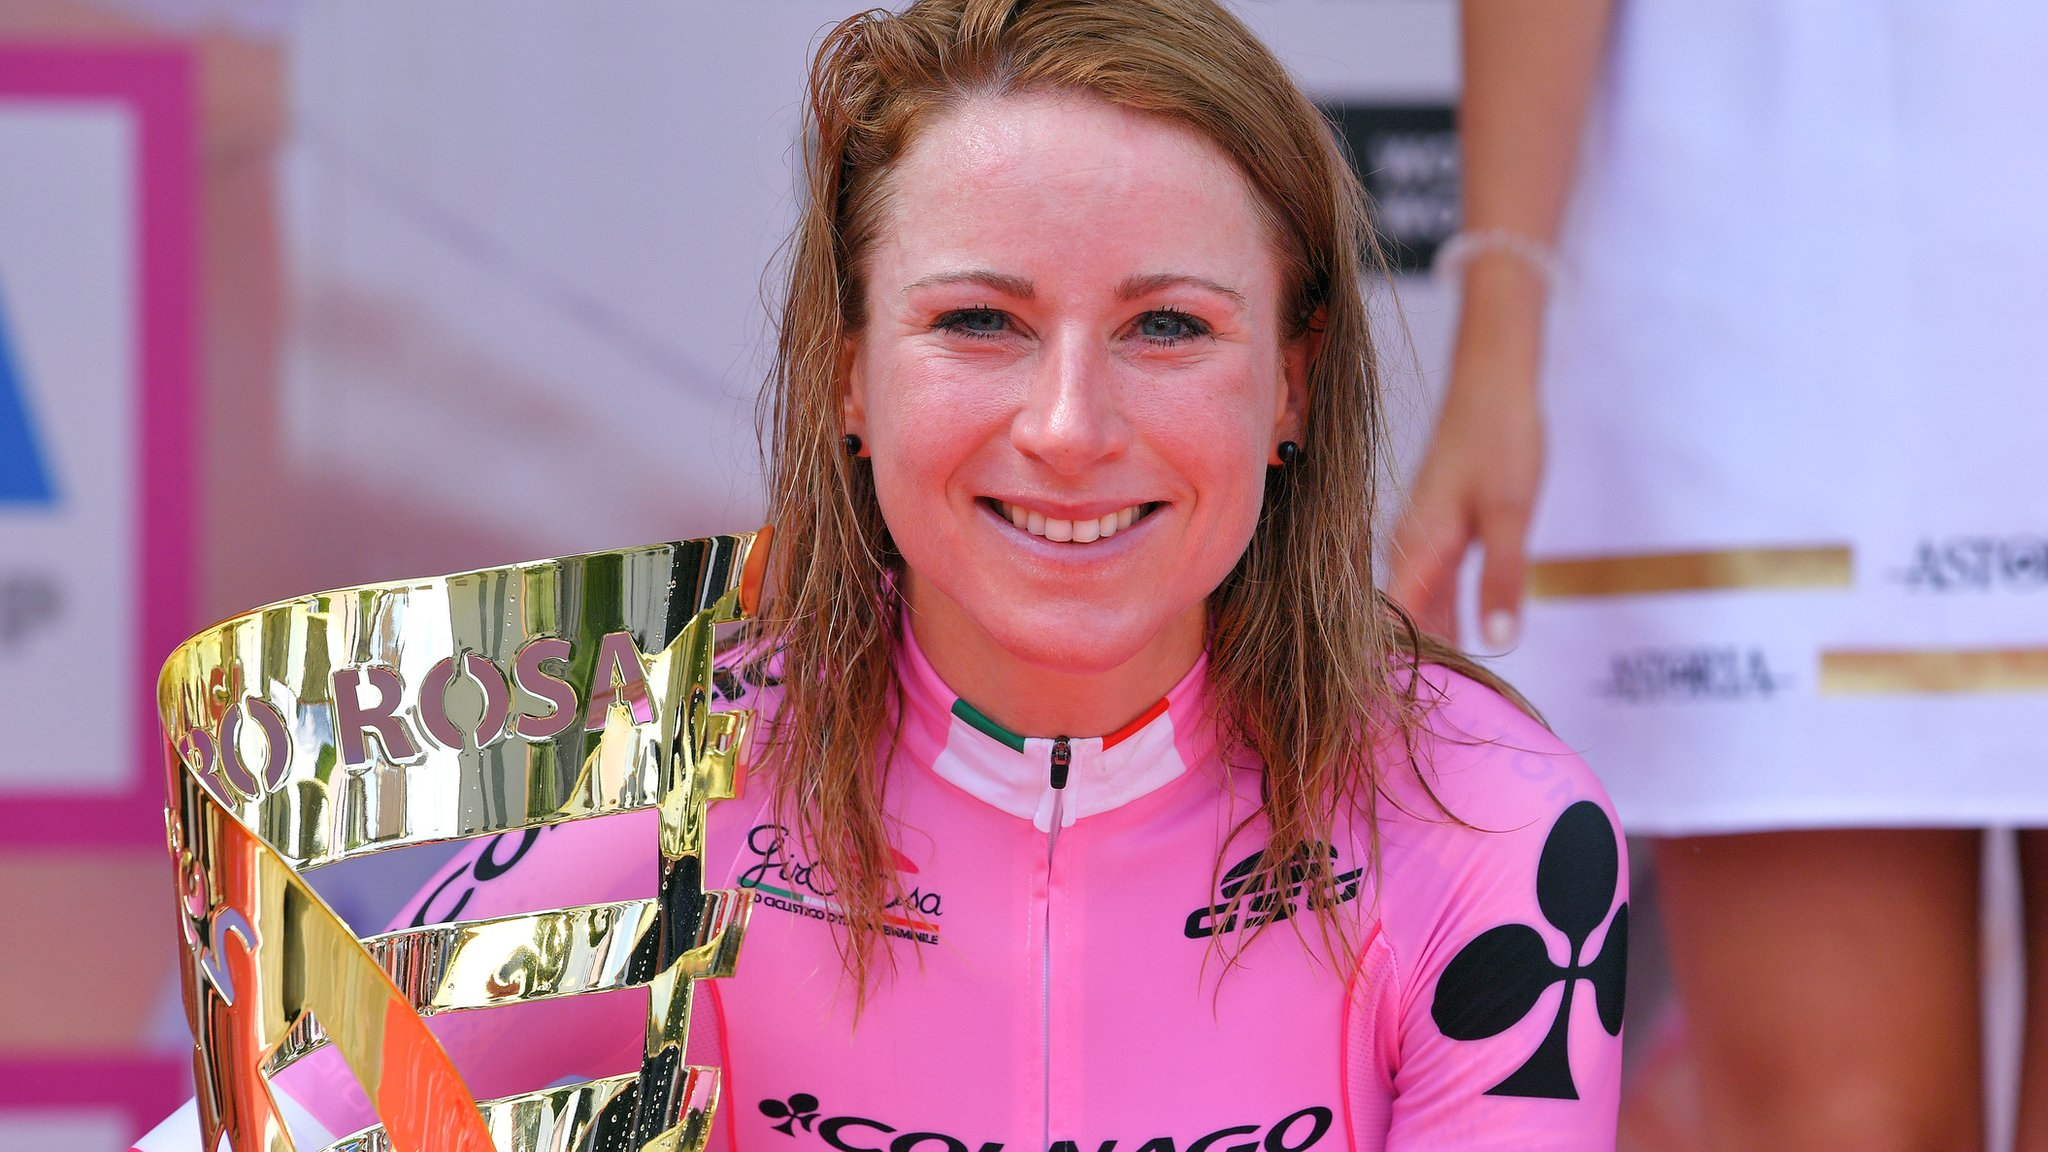 Giro Rosa 2018: Annemiek van Vleuten secures title with third stage win